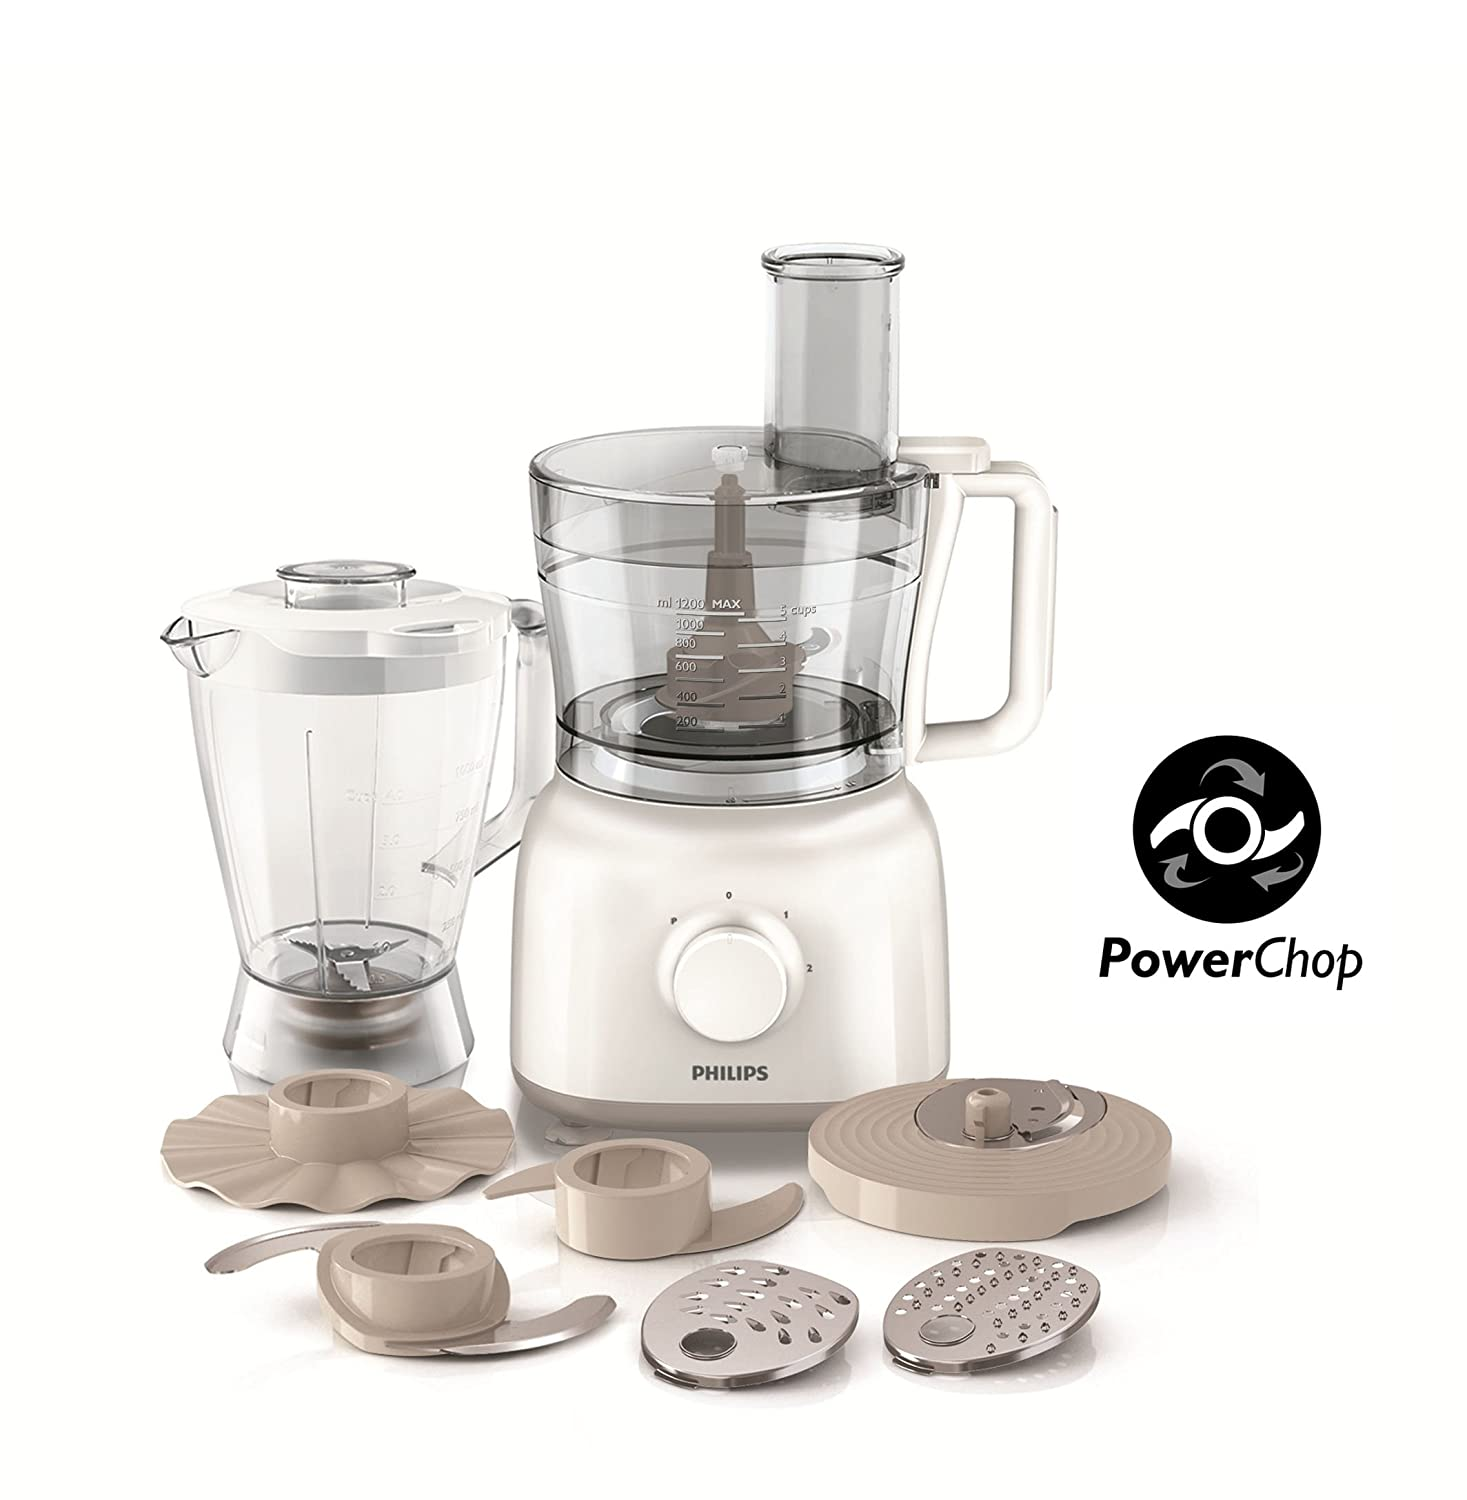 Phillips Kitchen Appliances Philips Hr7628 01 Powerchop Daily Collection Food Processor With